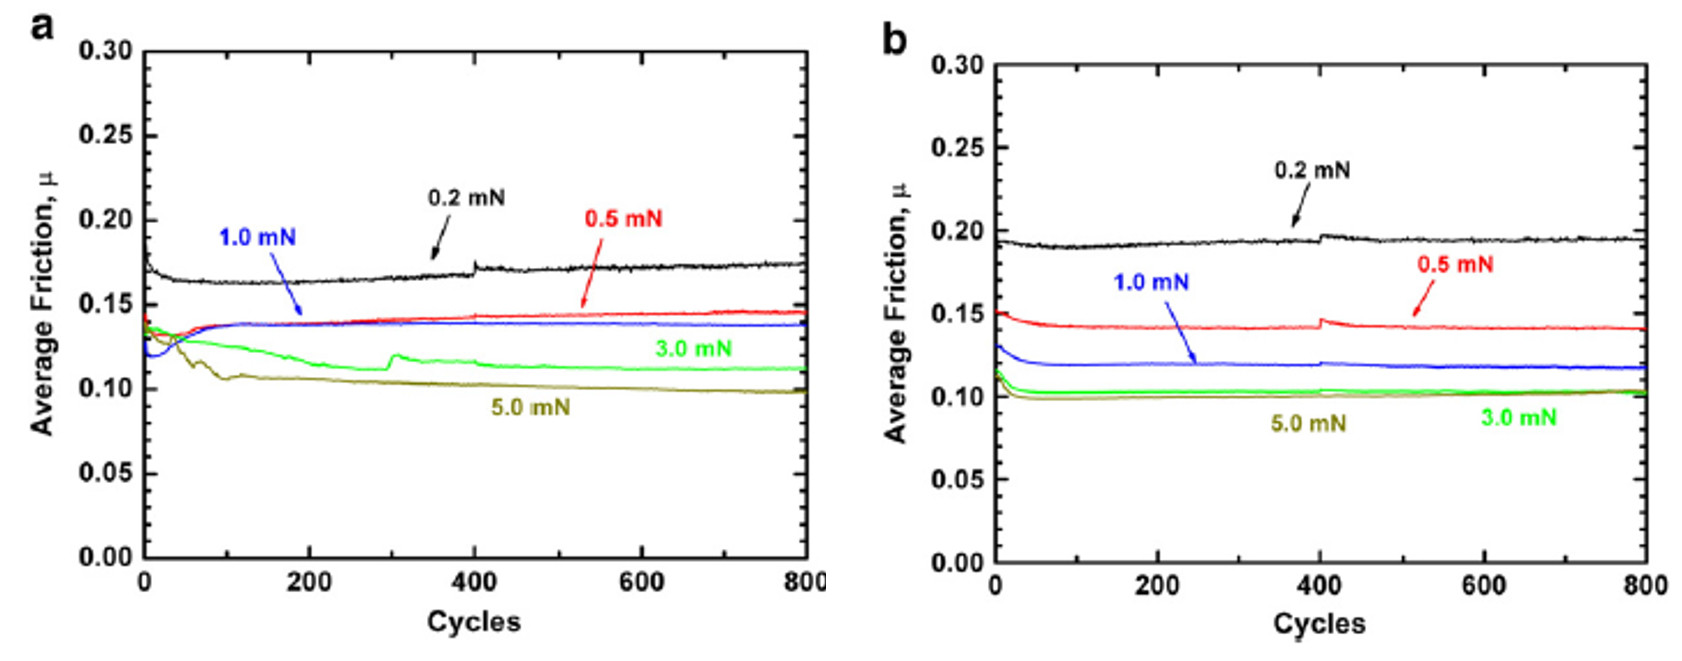 Average COF vs. cycle with varying normal loads between 0.2 mN and 5.0 mN for (a) sputtered Au sample and (b) co-sputtered Au-MoS2 sample.